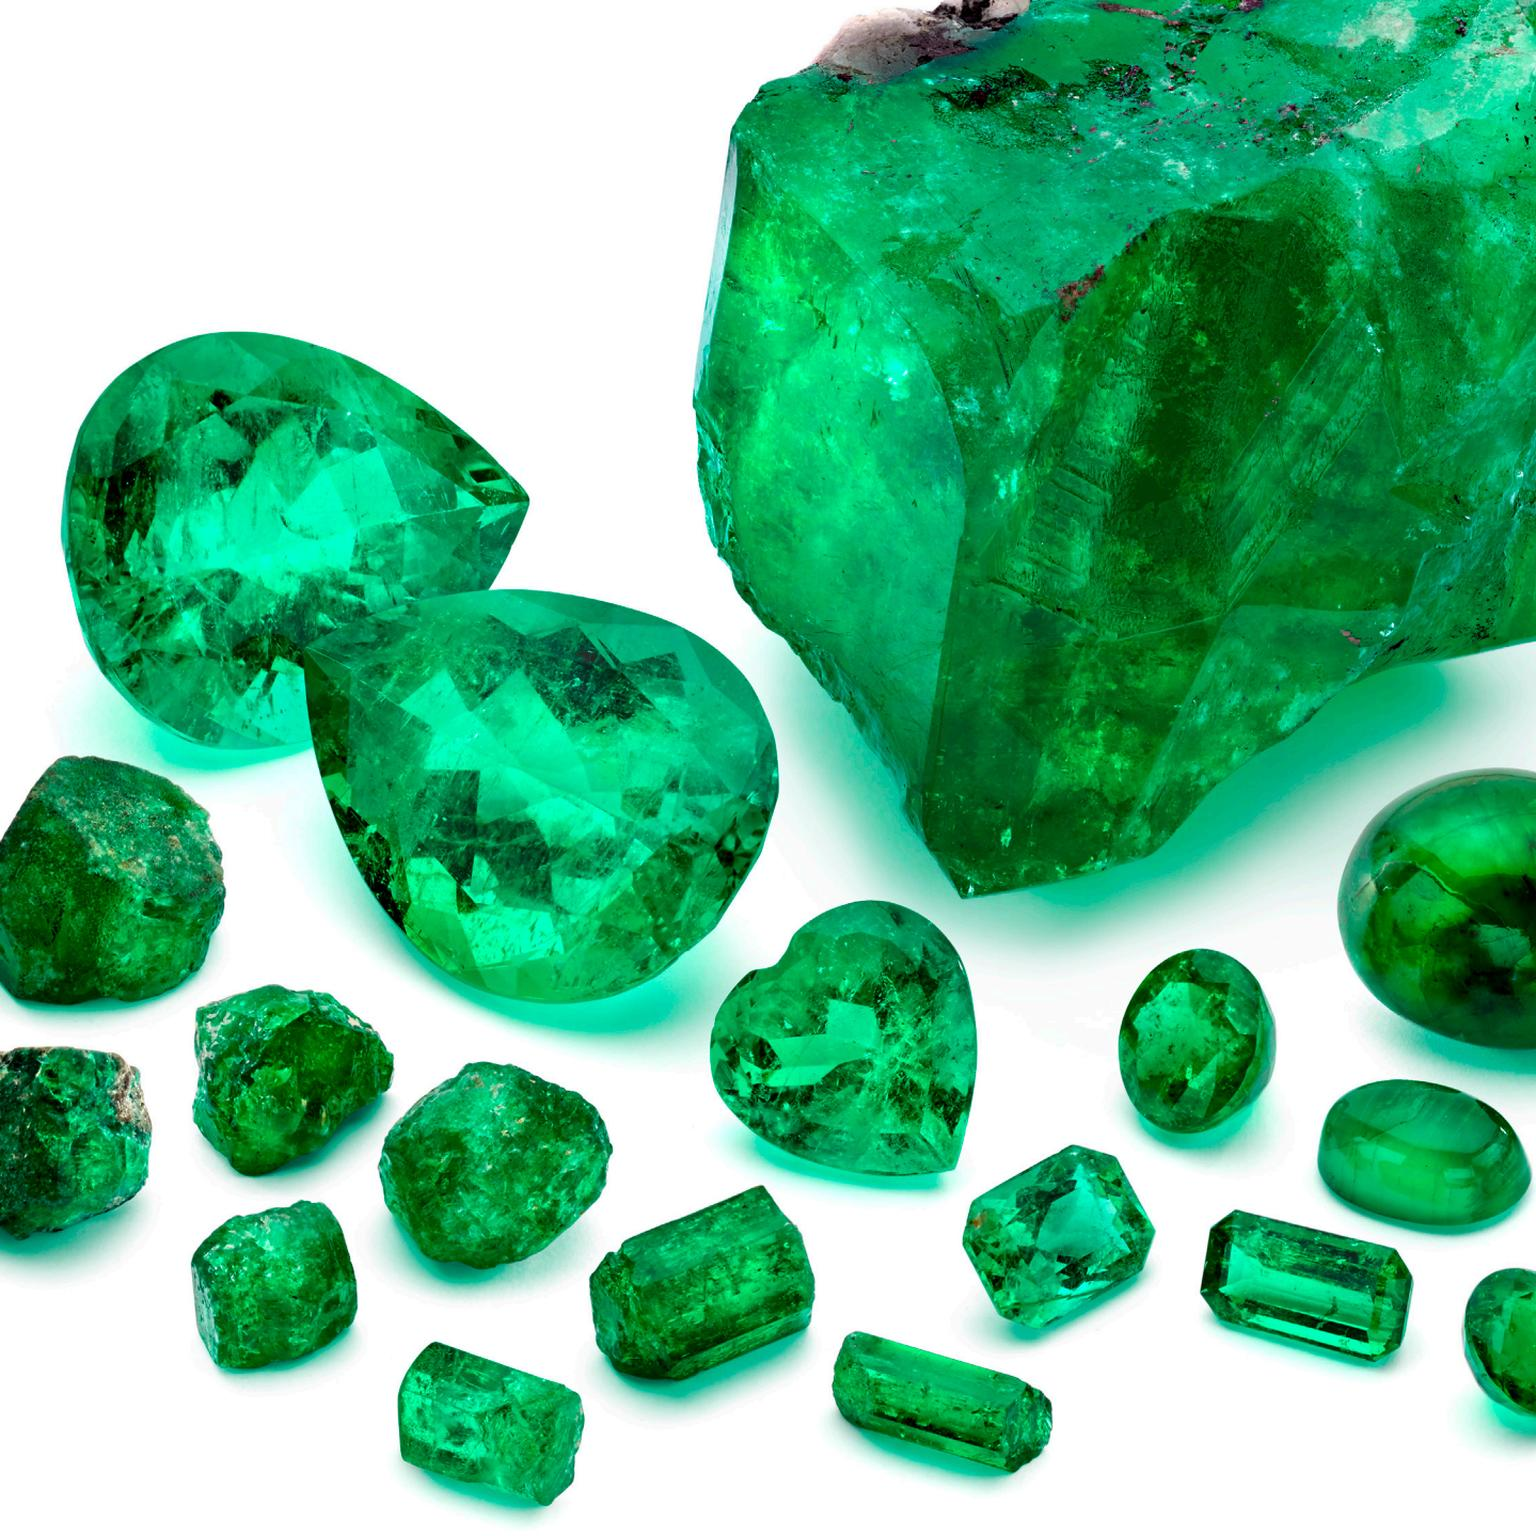 Marcial de Gomar Collection emeralds for auction